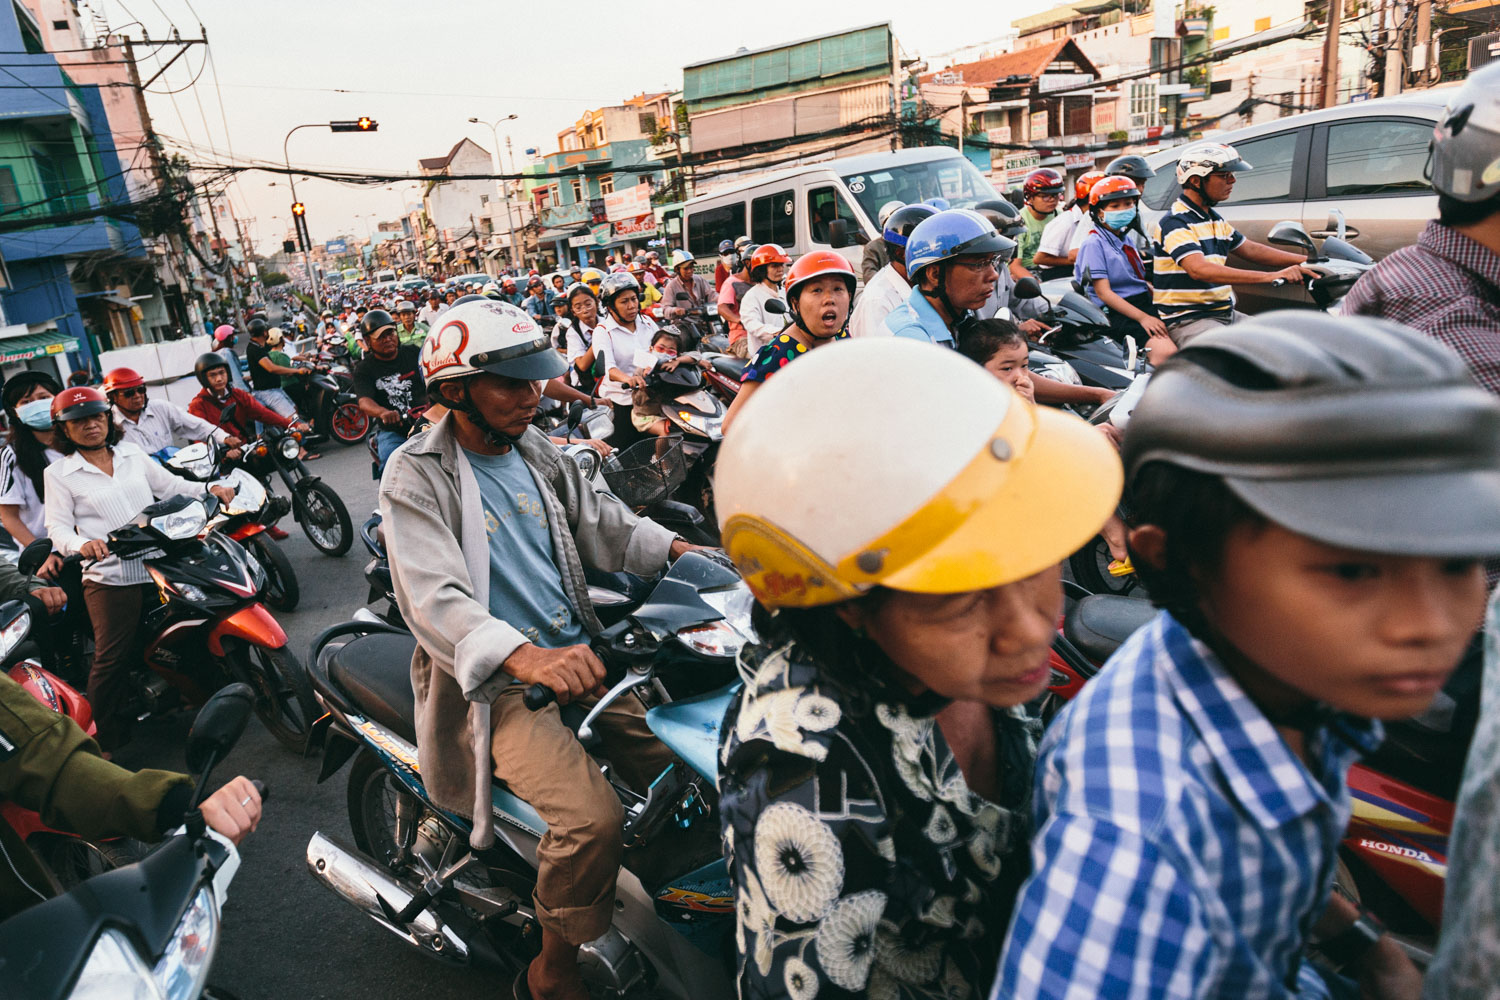 A traffic jam of motorcycles during rush hour in Ho Chi Minh City, Saigon, Vietnam